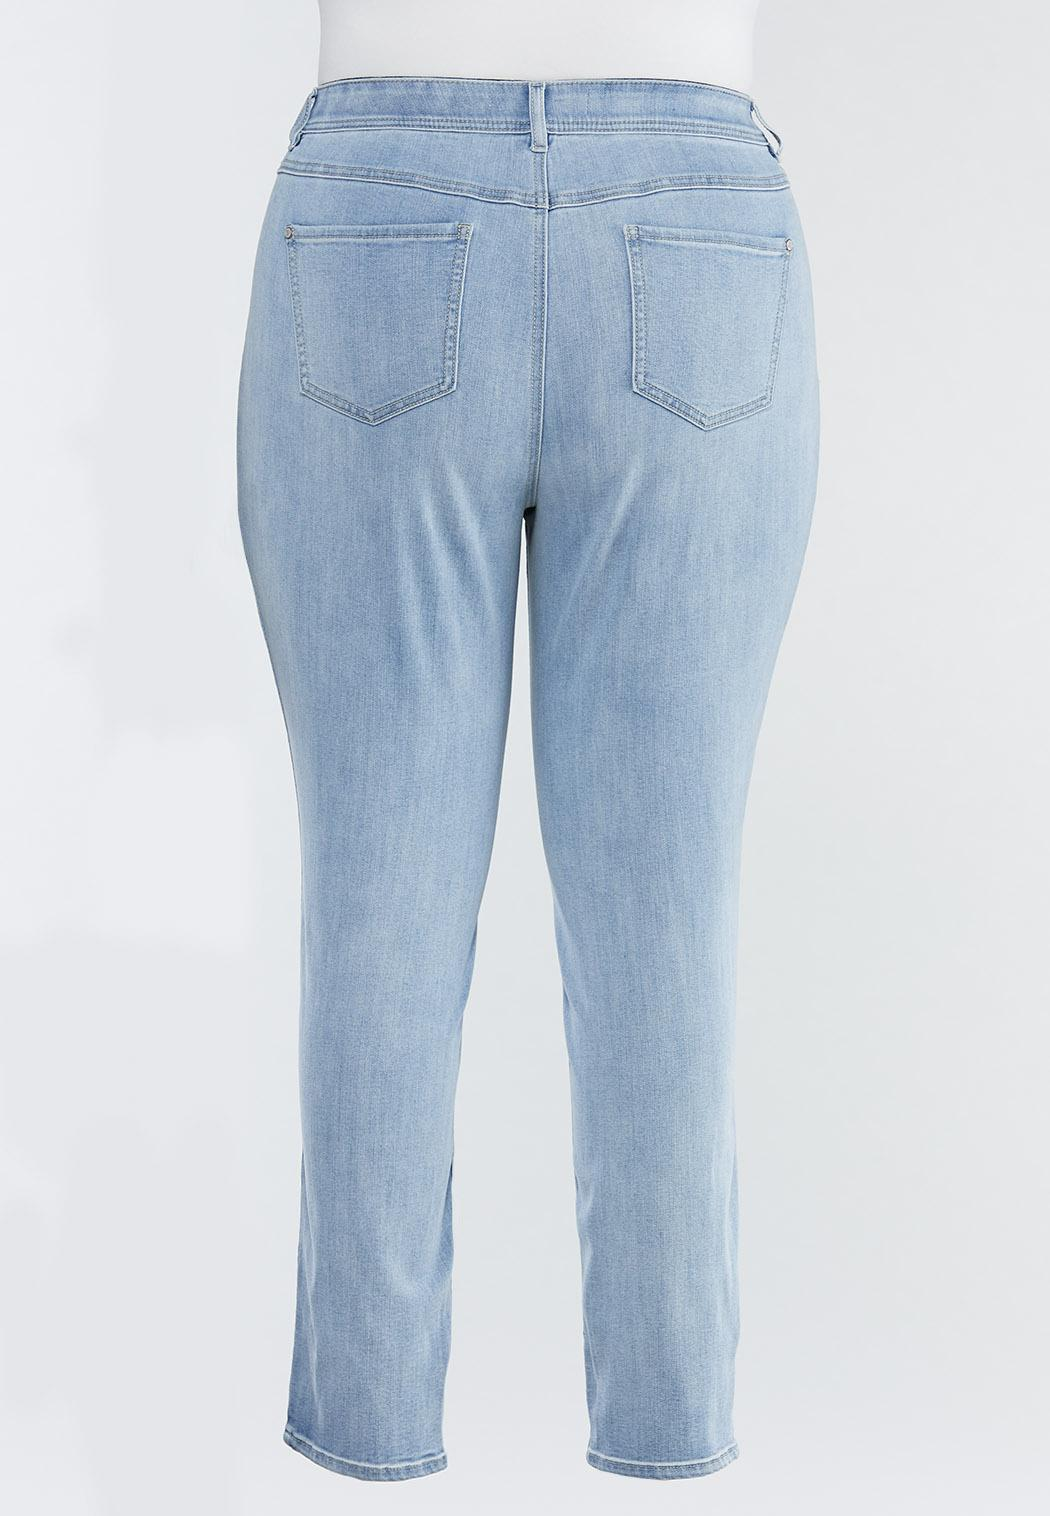 Plus Size Lightwash Skinny Jeans (Item #44492381)